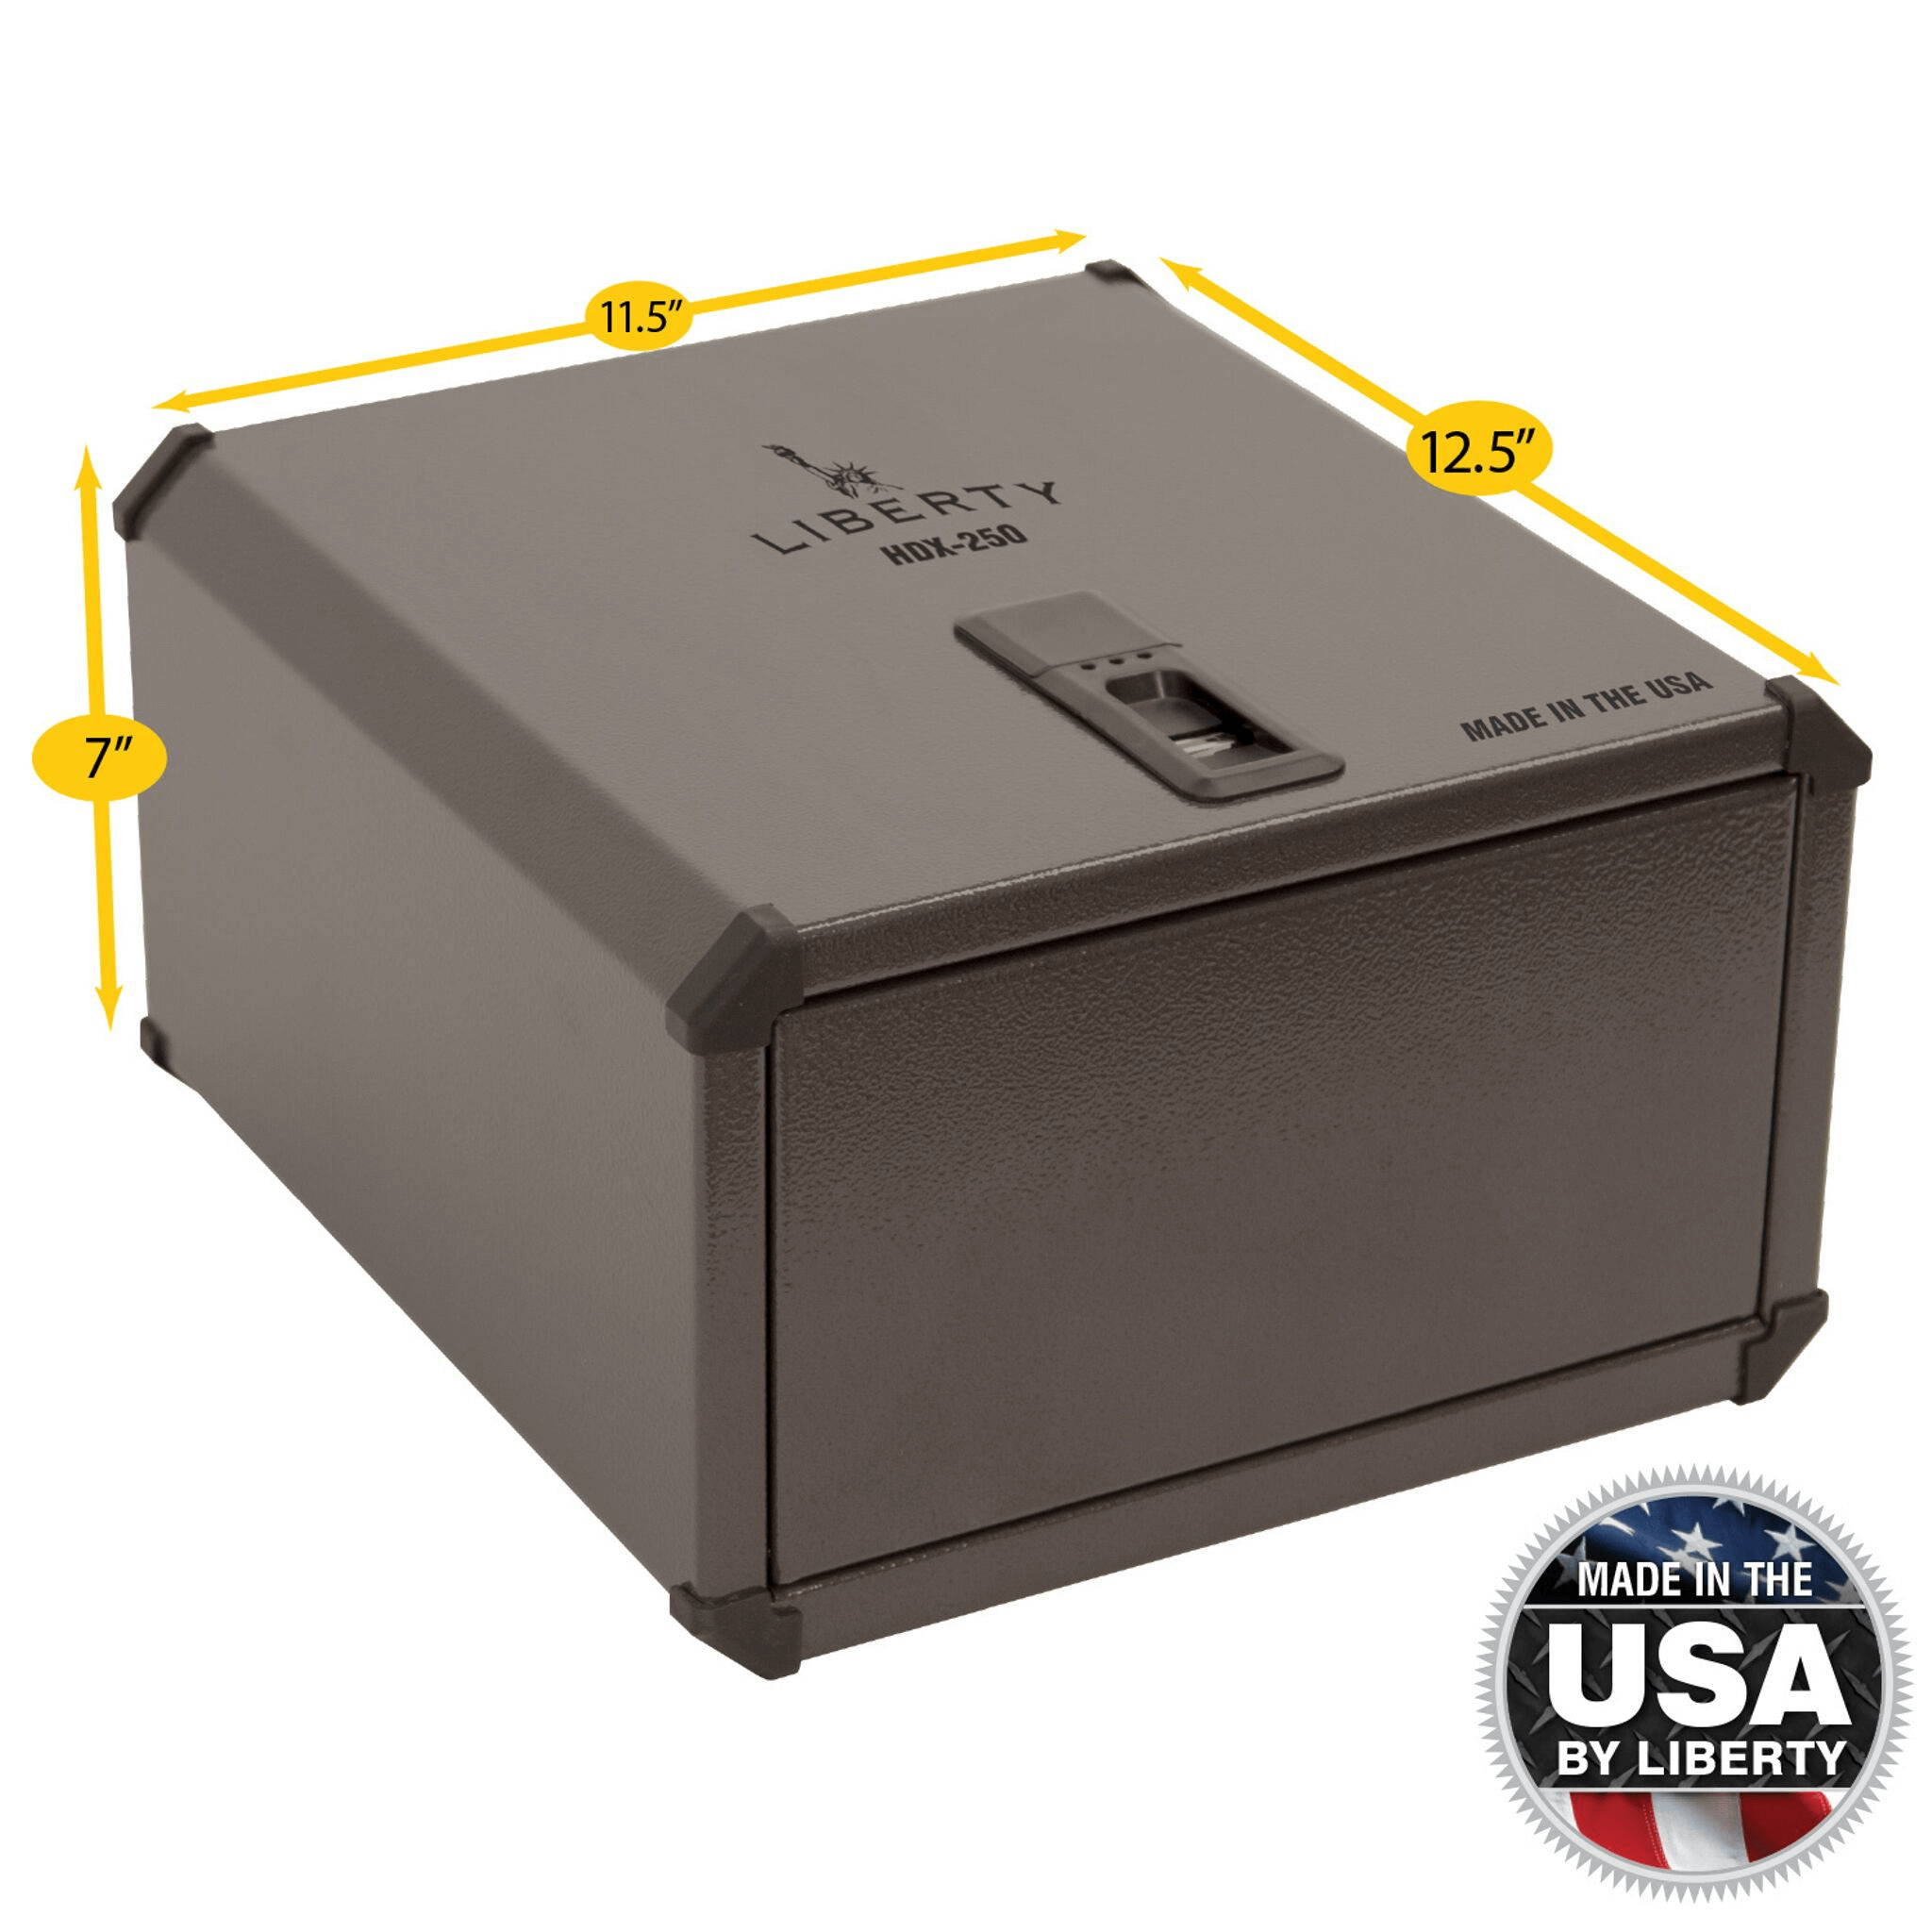 Liberty Safe HDX-250 biometric smart vault